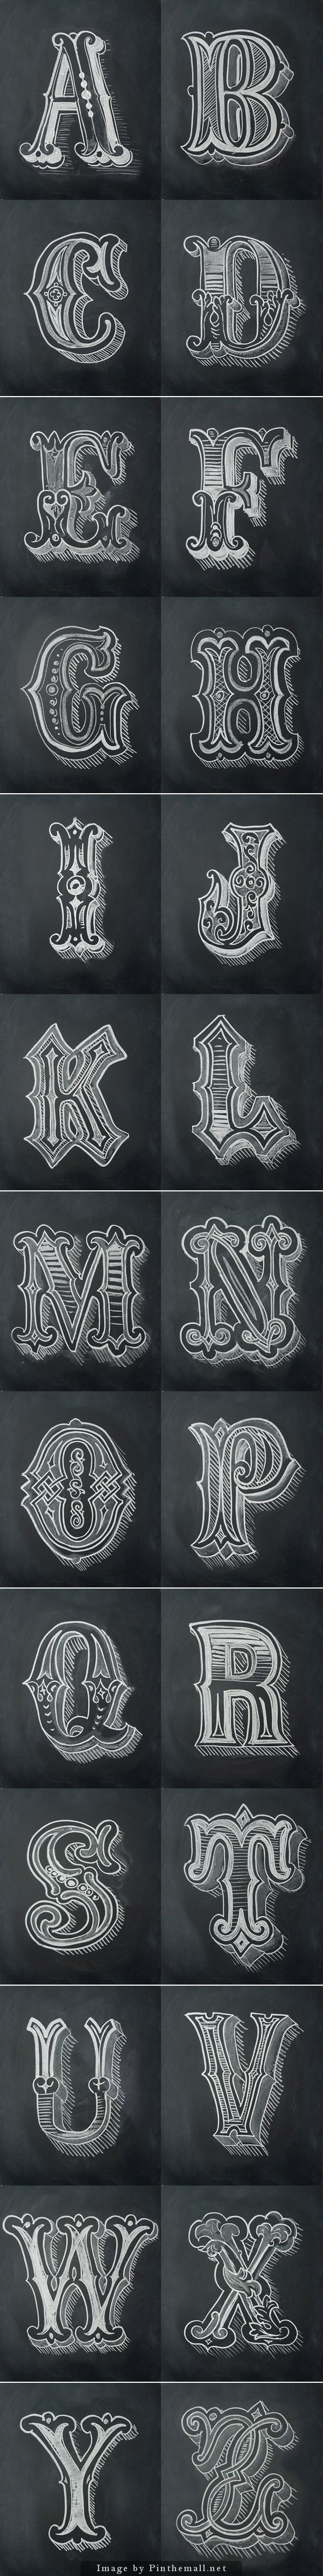 Chalk Alphabet by Antonio Rodrigues Jr    - a grouped images